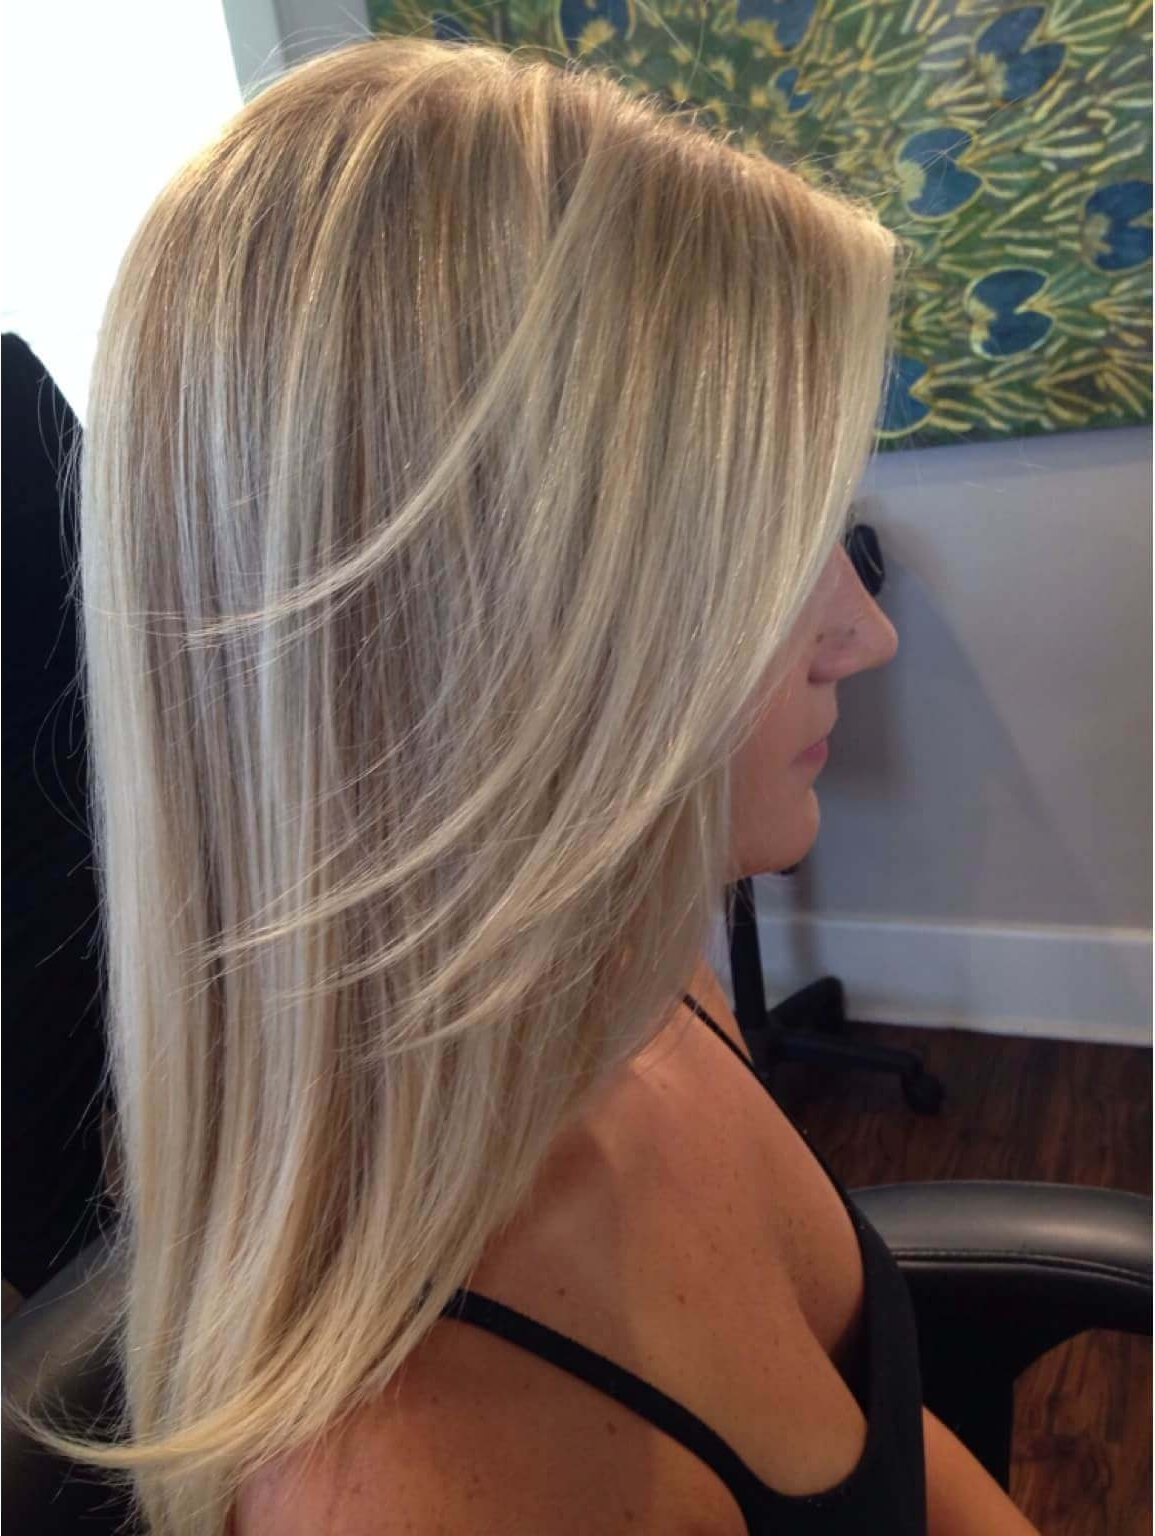 30 Blonde Medium Hairstyles Ideas For Women Intended For 2017 Soft Layers And Side Tuck Blonde Hairstyles (View 6 of 20)